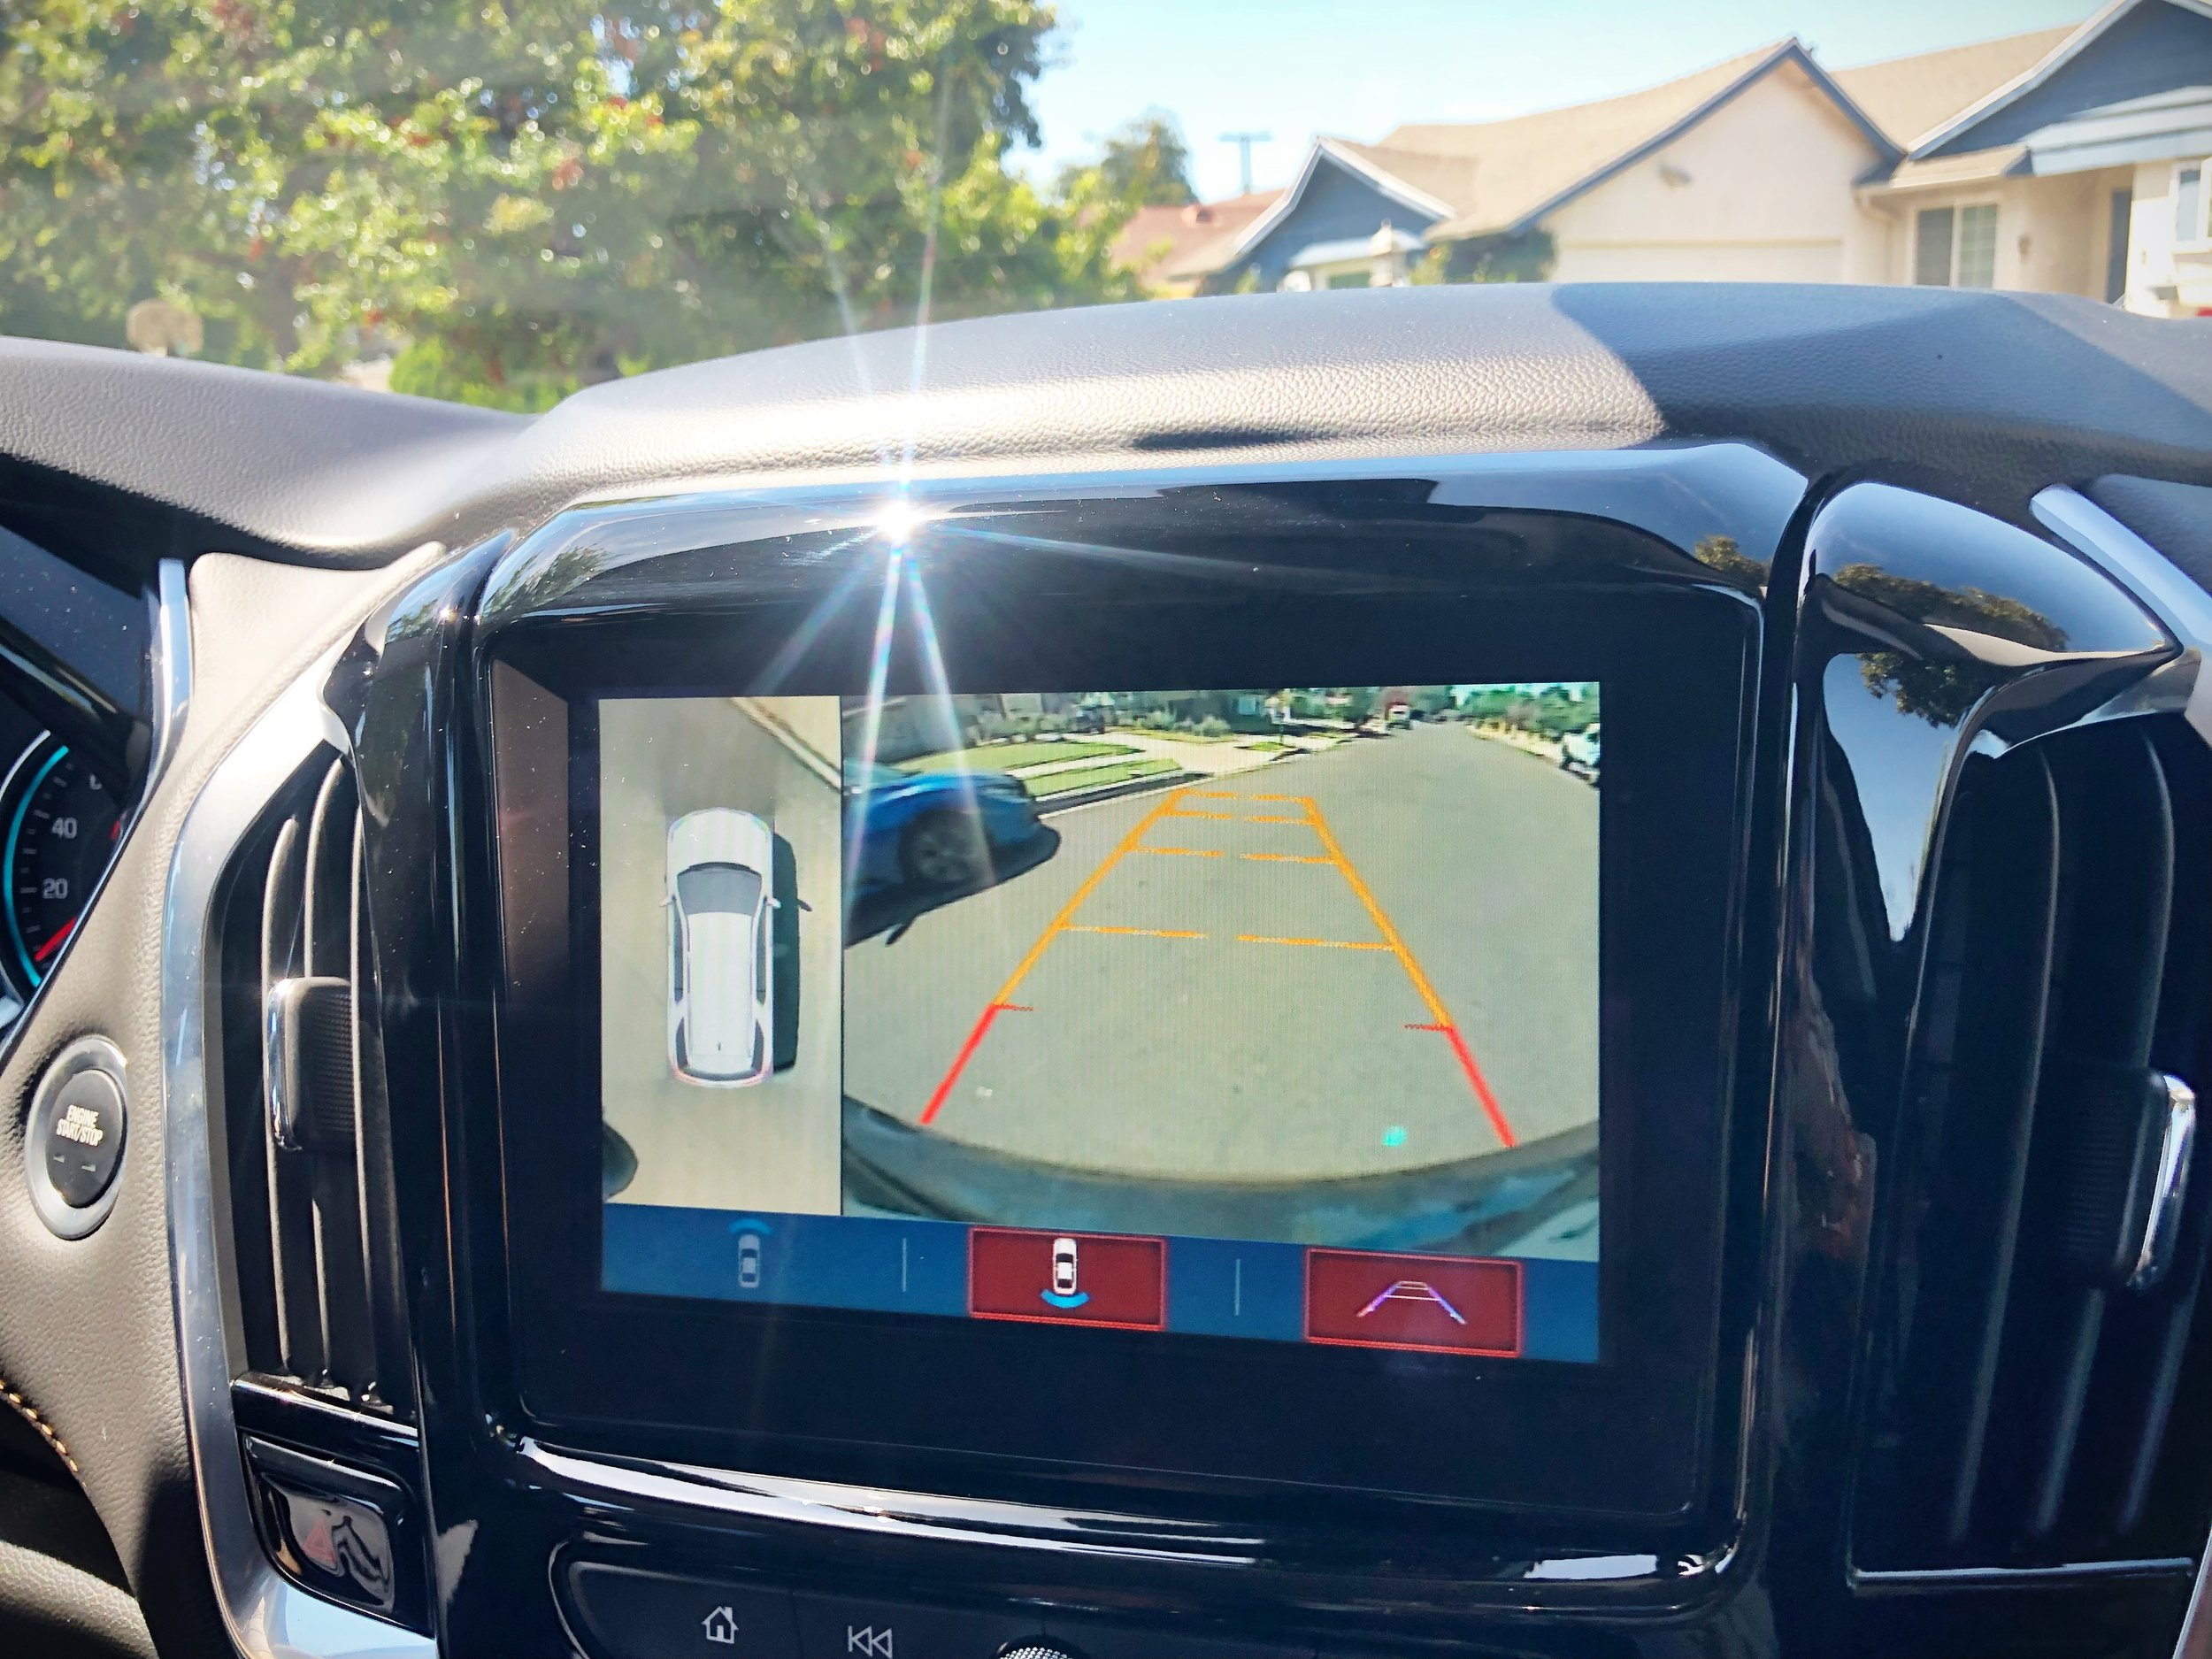 One of my favorite features of the Chevy Traverse is the rear camera!